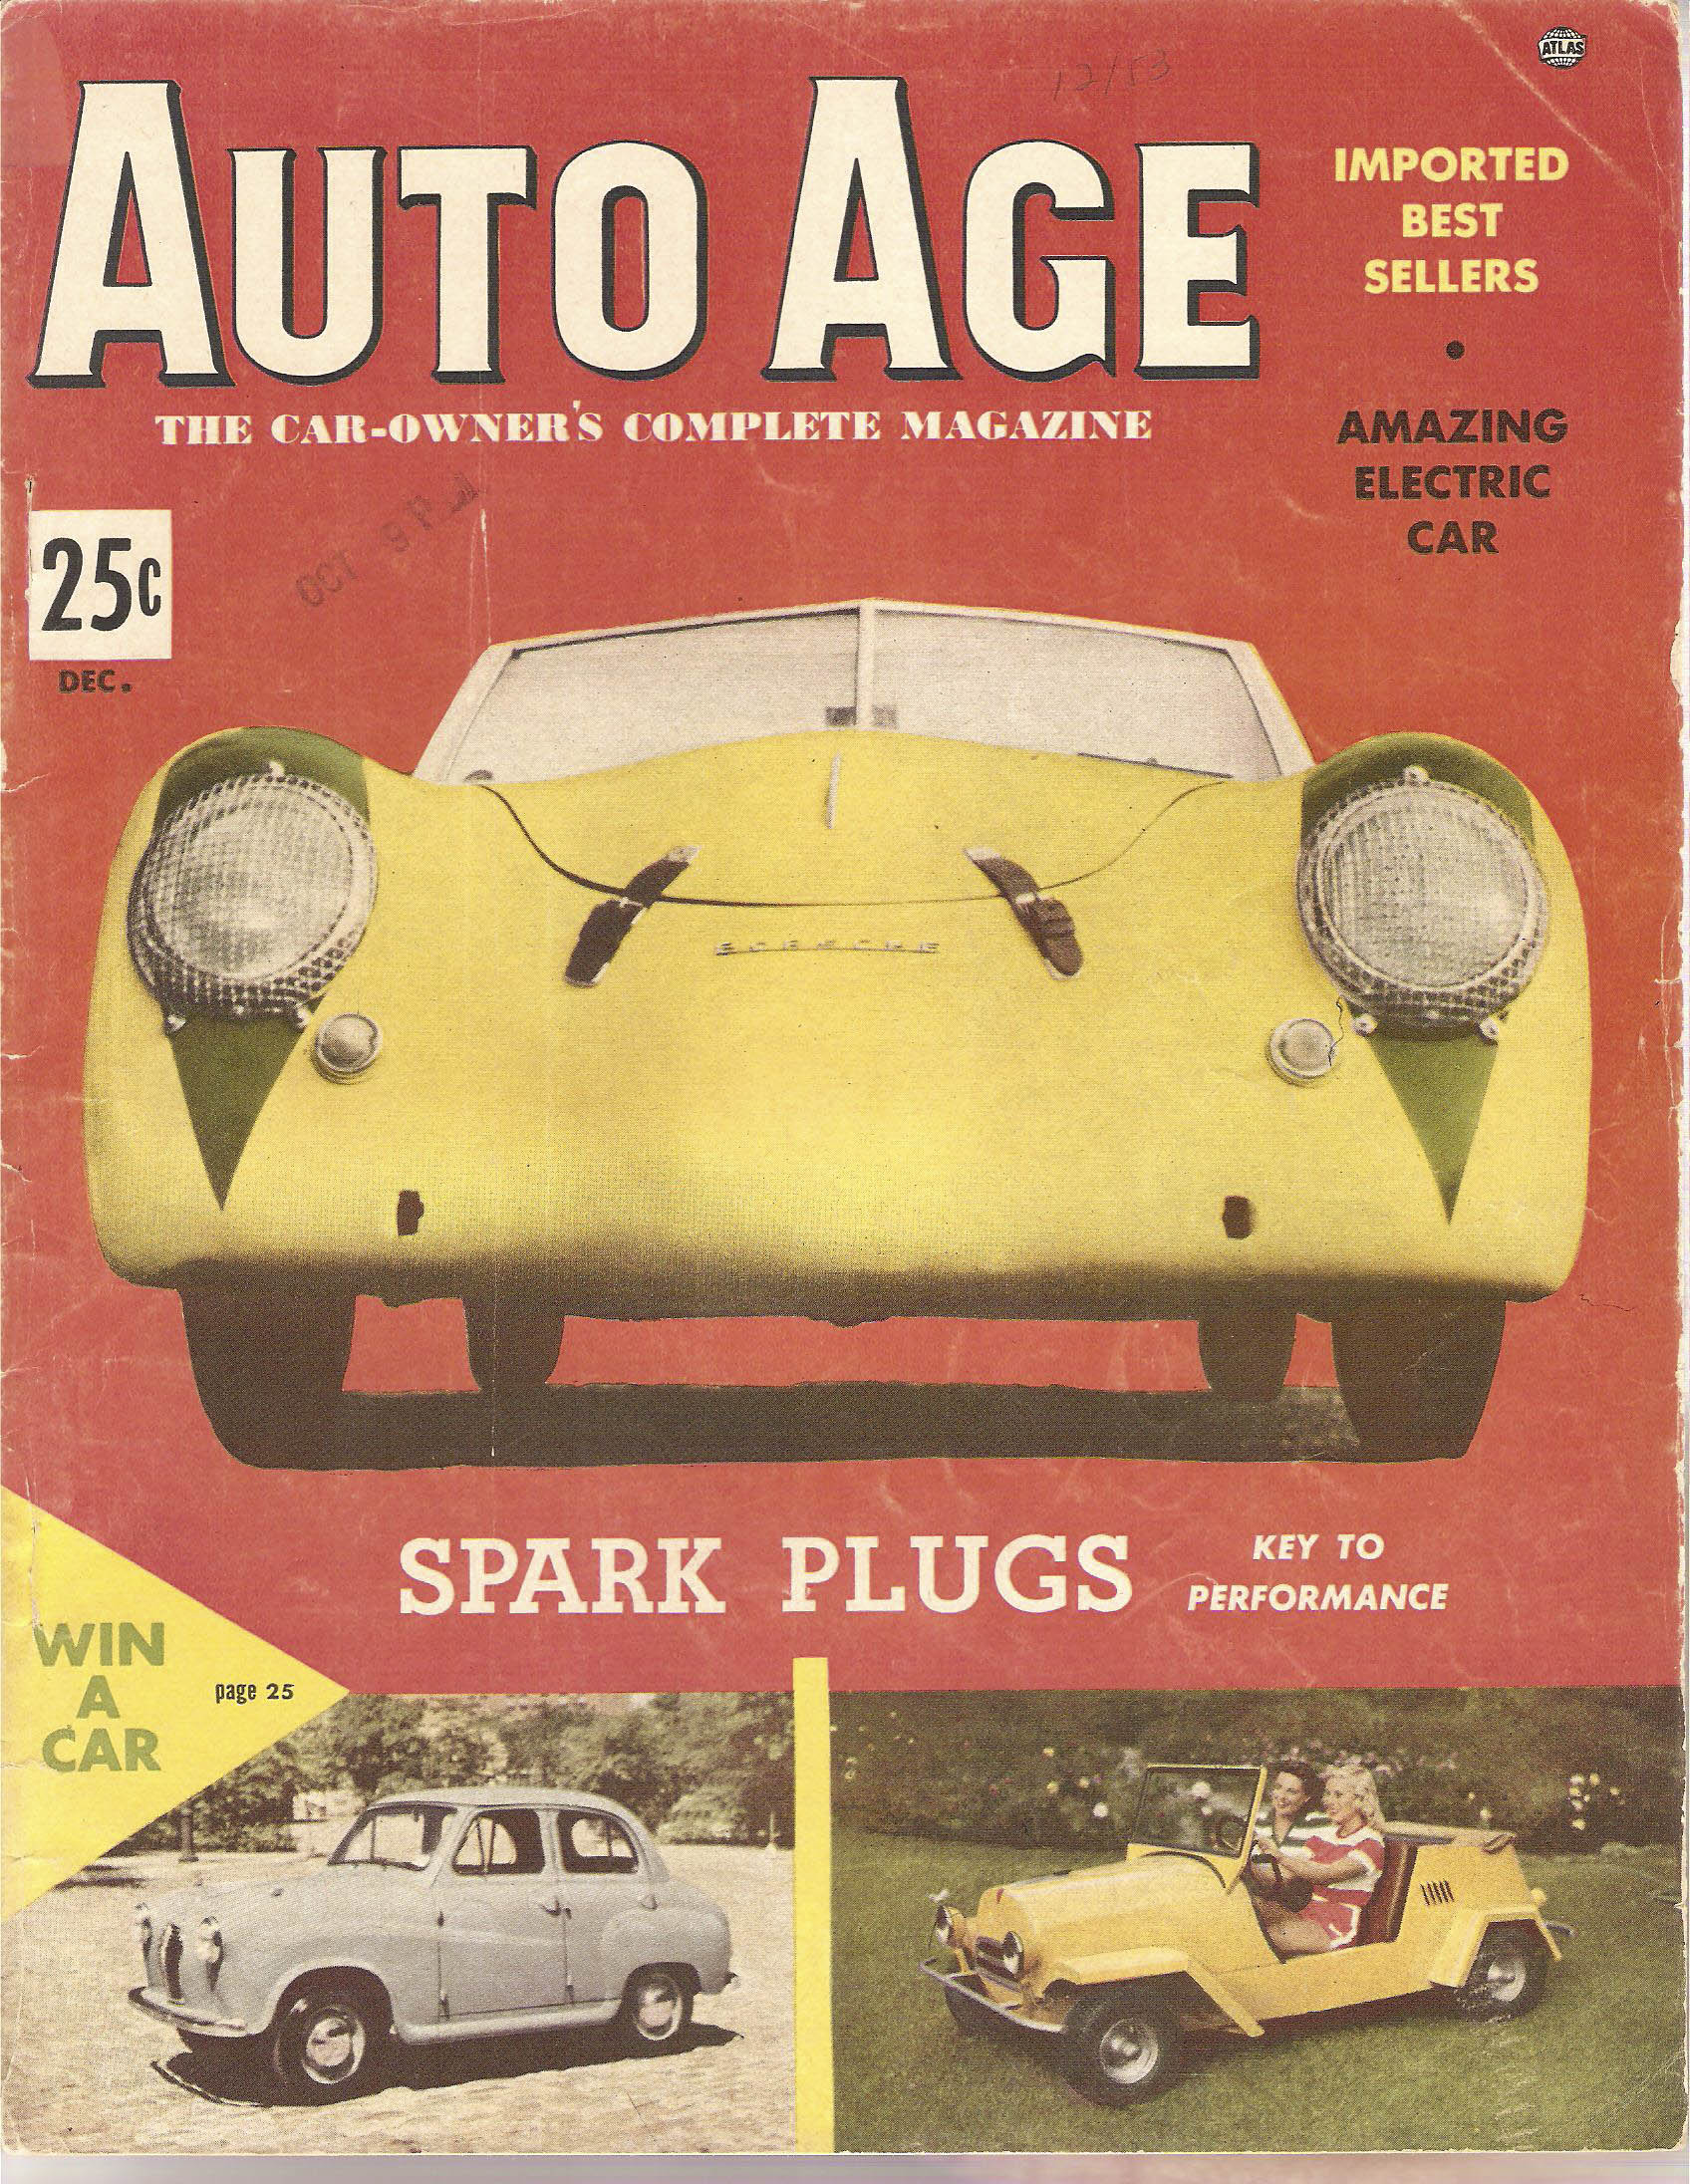 The December 1953 cover of Auto Age. Editor John Bentley owned the Porsche America Roadster at this time. He wrote about it in this issue.